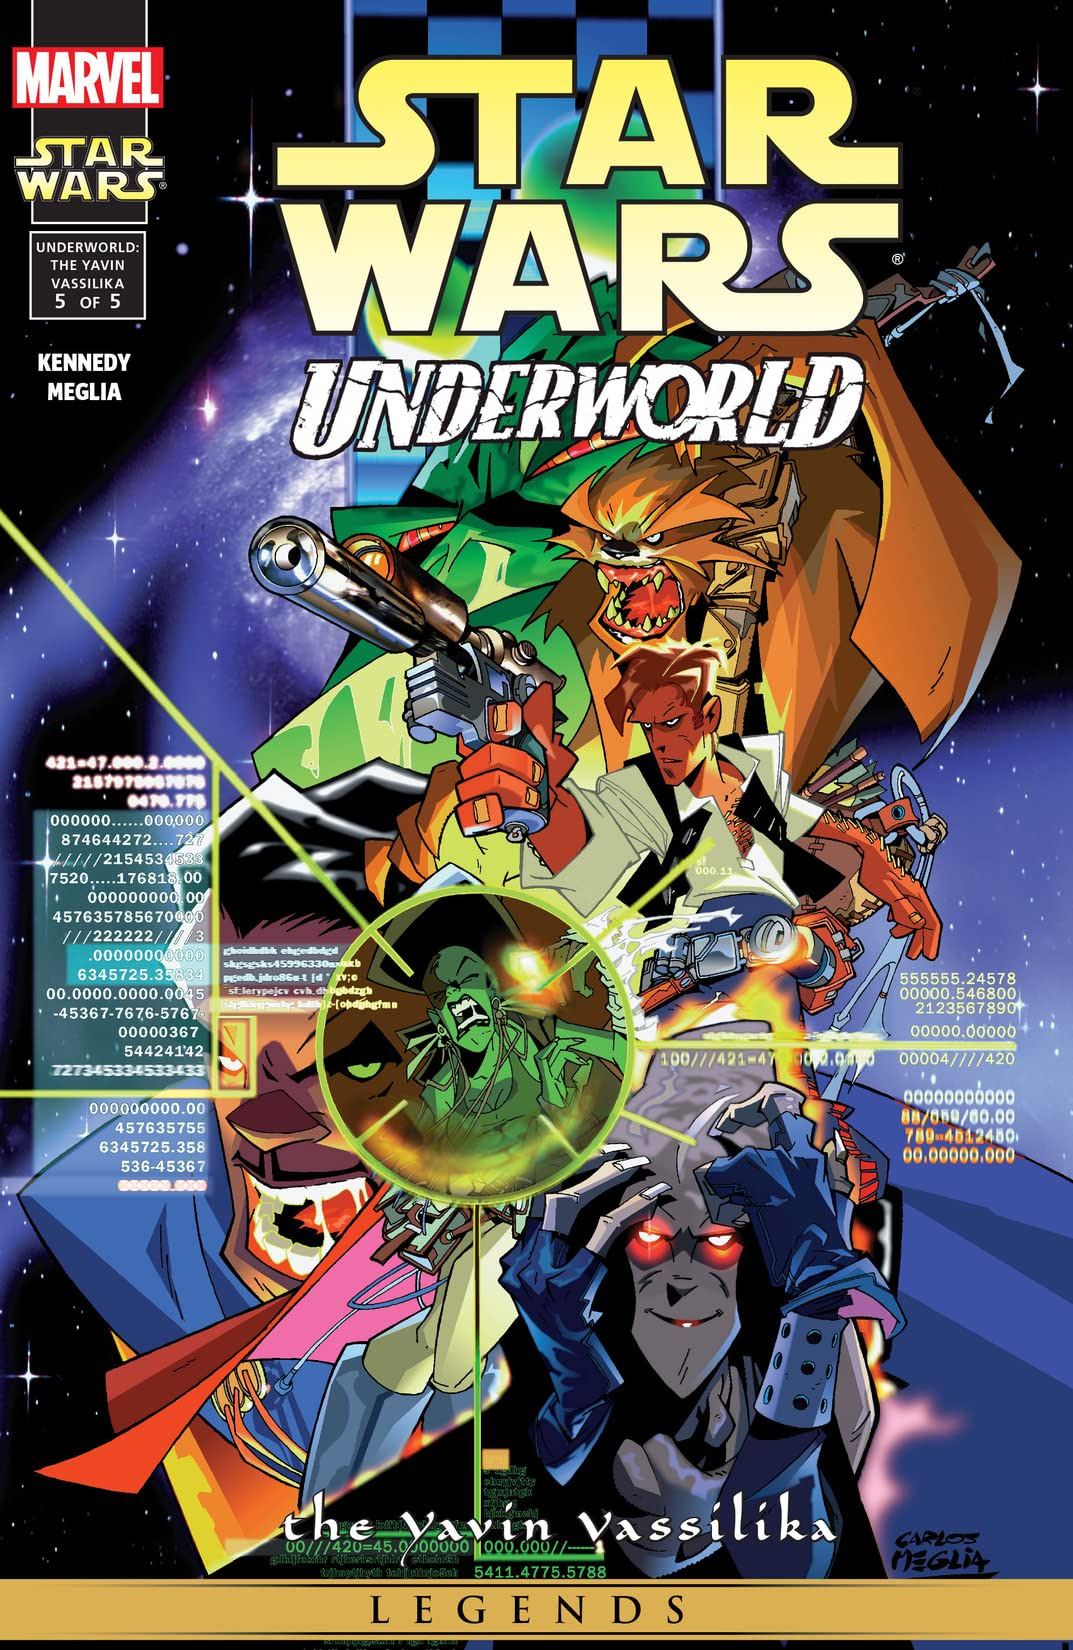 Star Wars: Underworld - The Yavin Vassilika (2000-2001) #5 (of 5)